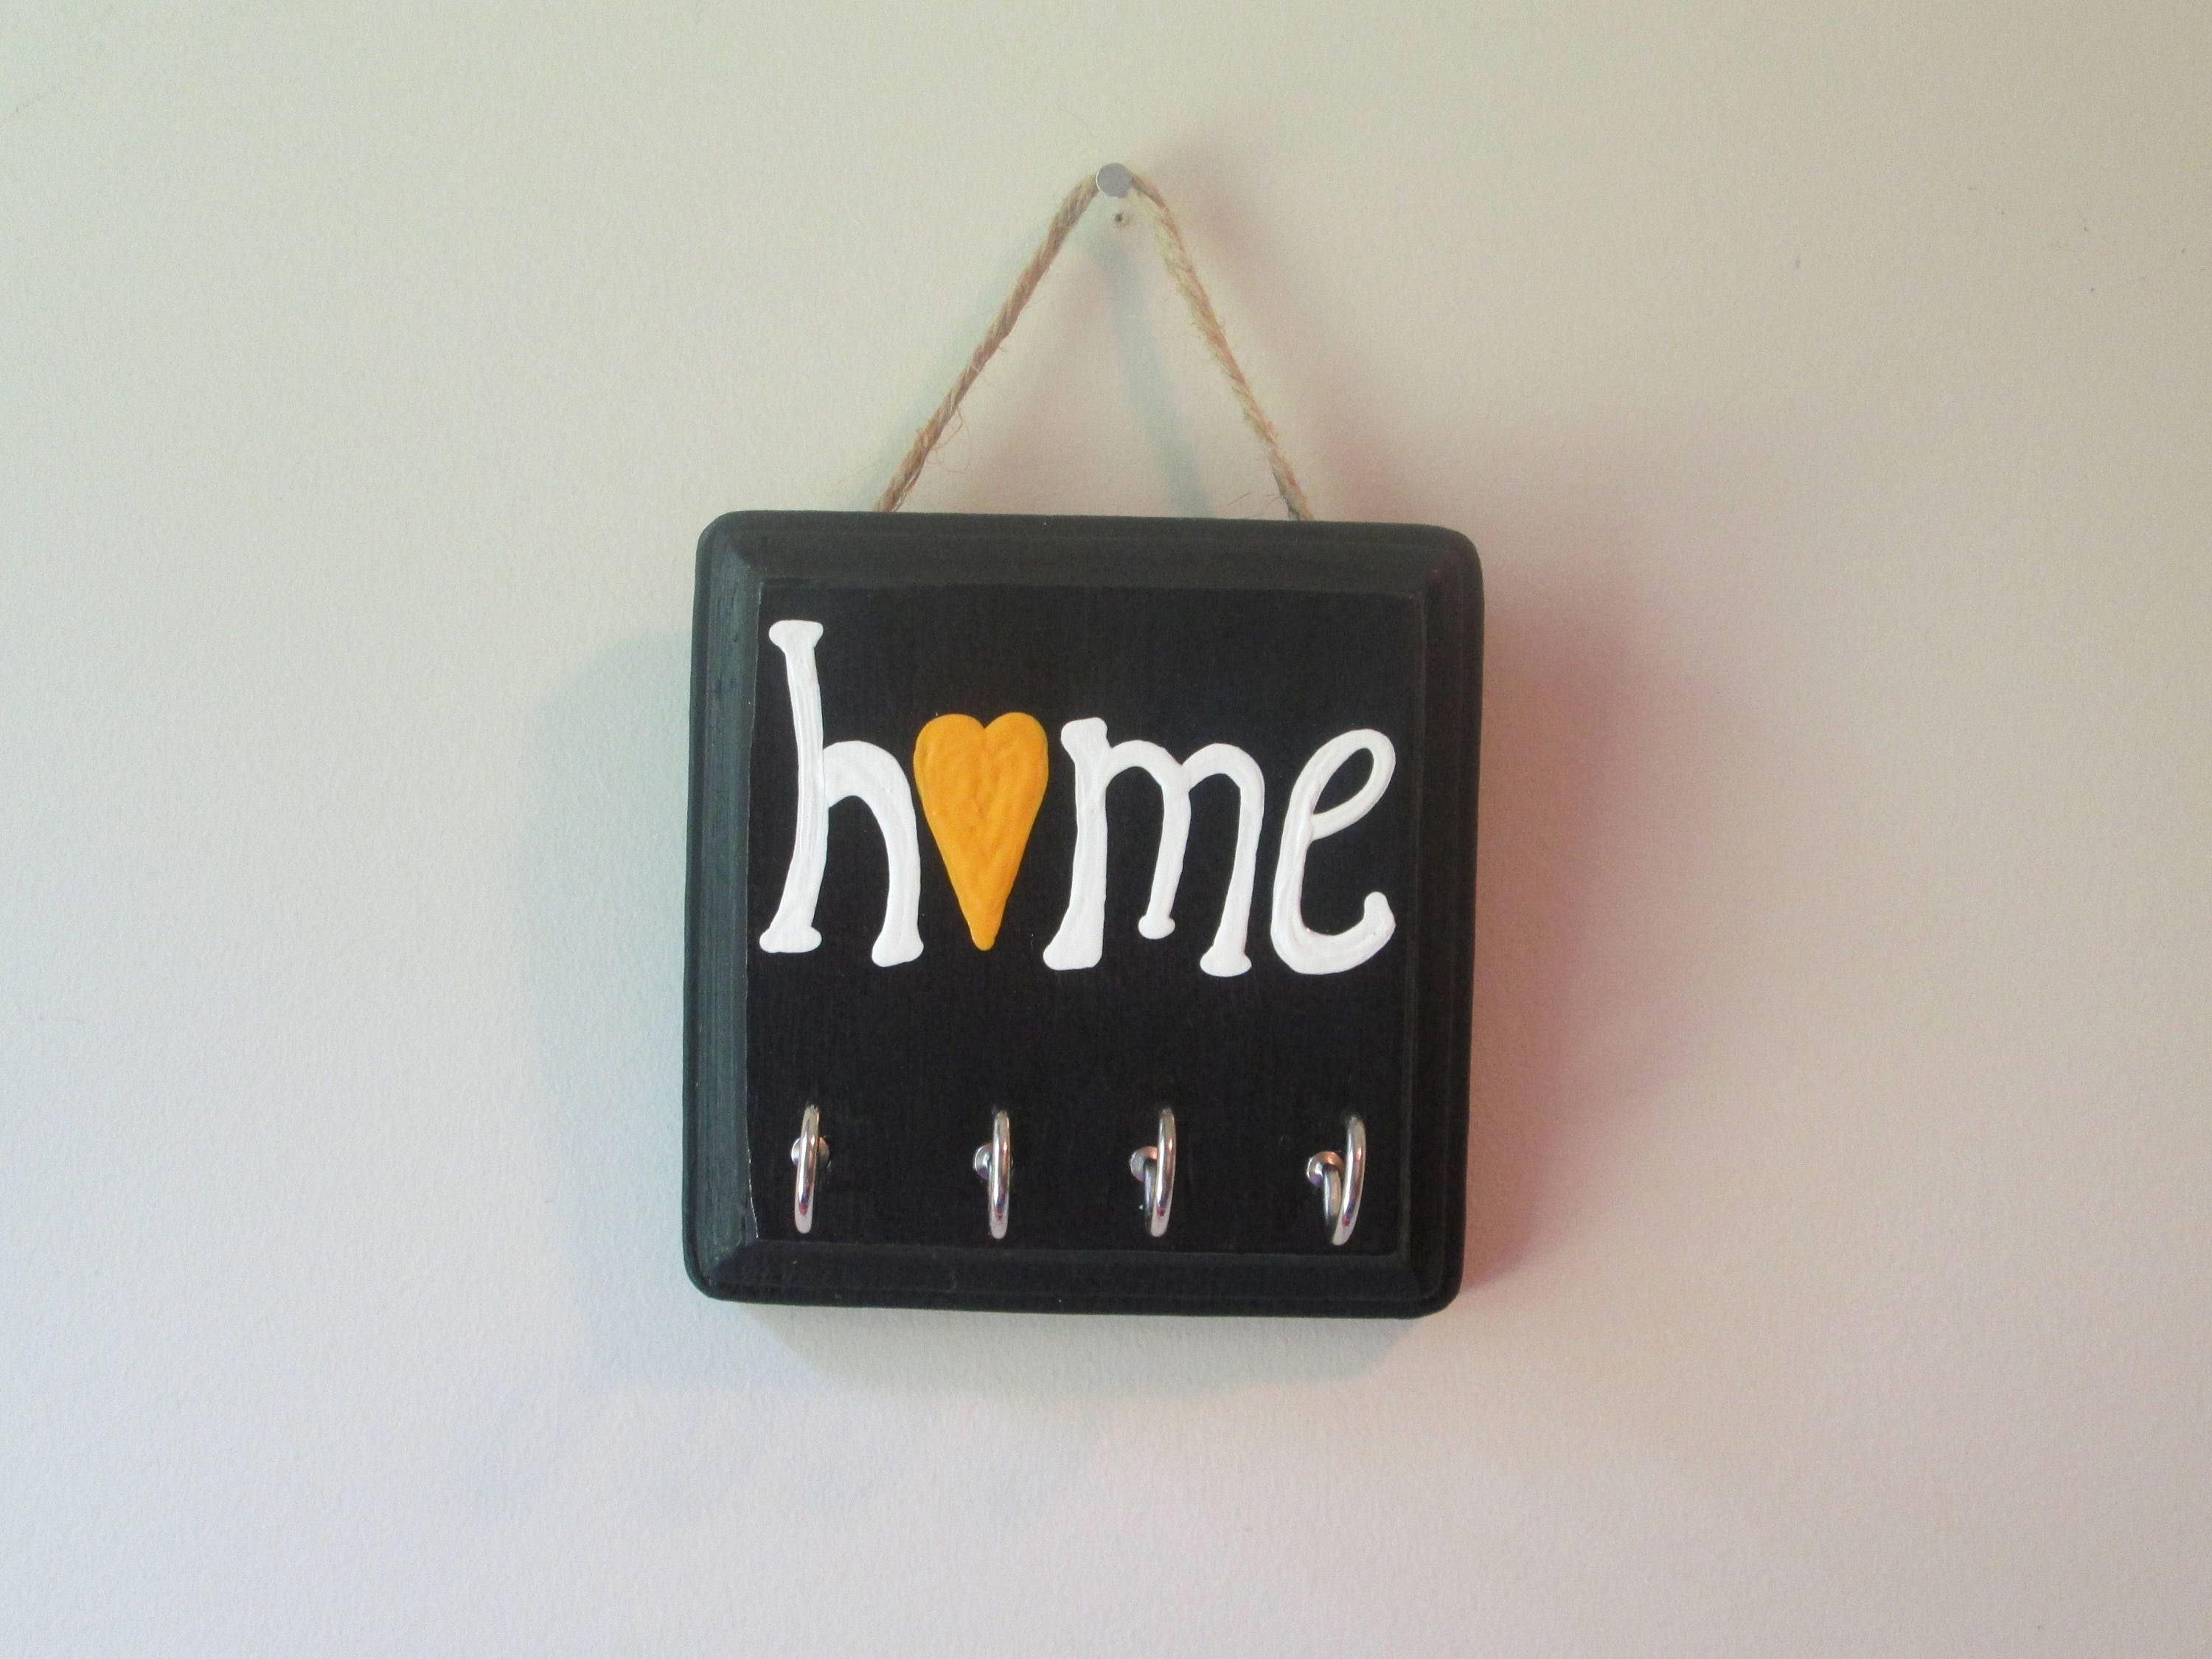 Key Holder For Wall Key Holder For Wall Hand Painted Home Key Hanger Wall Mount